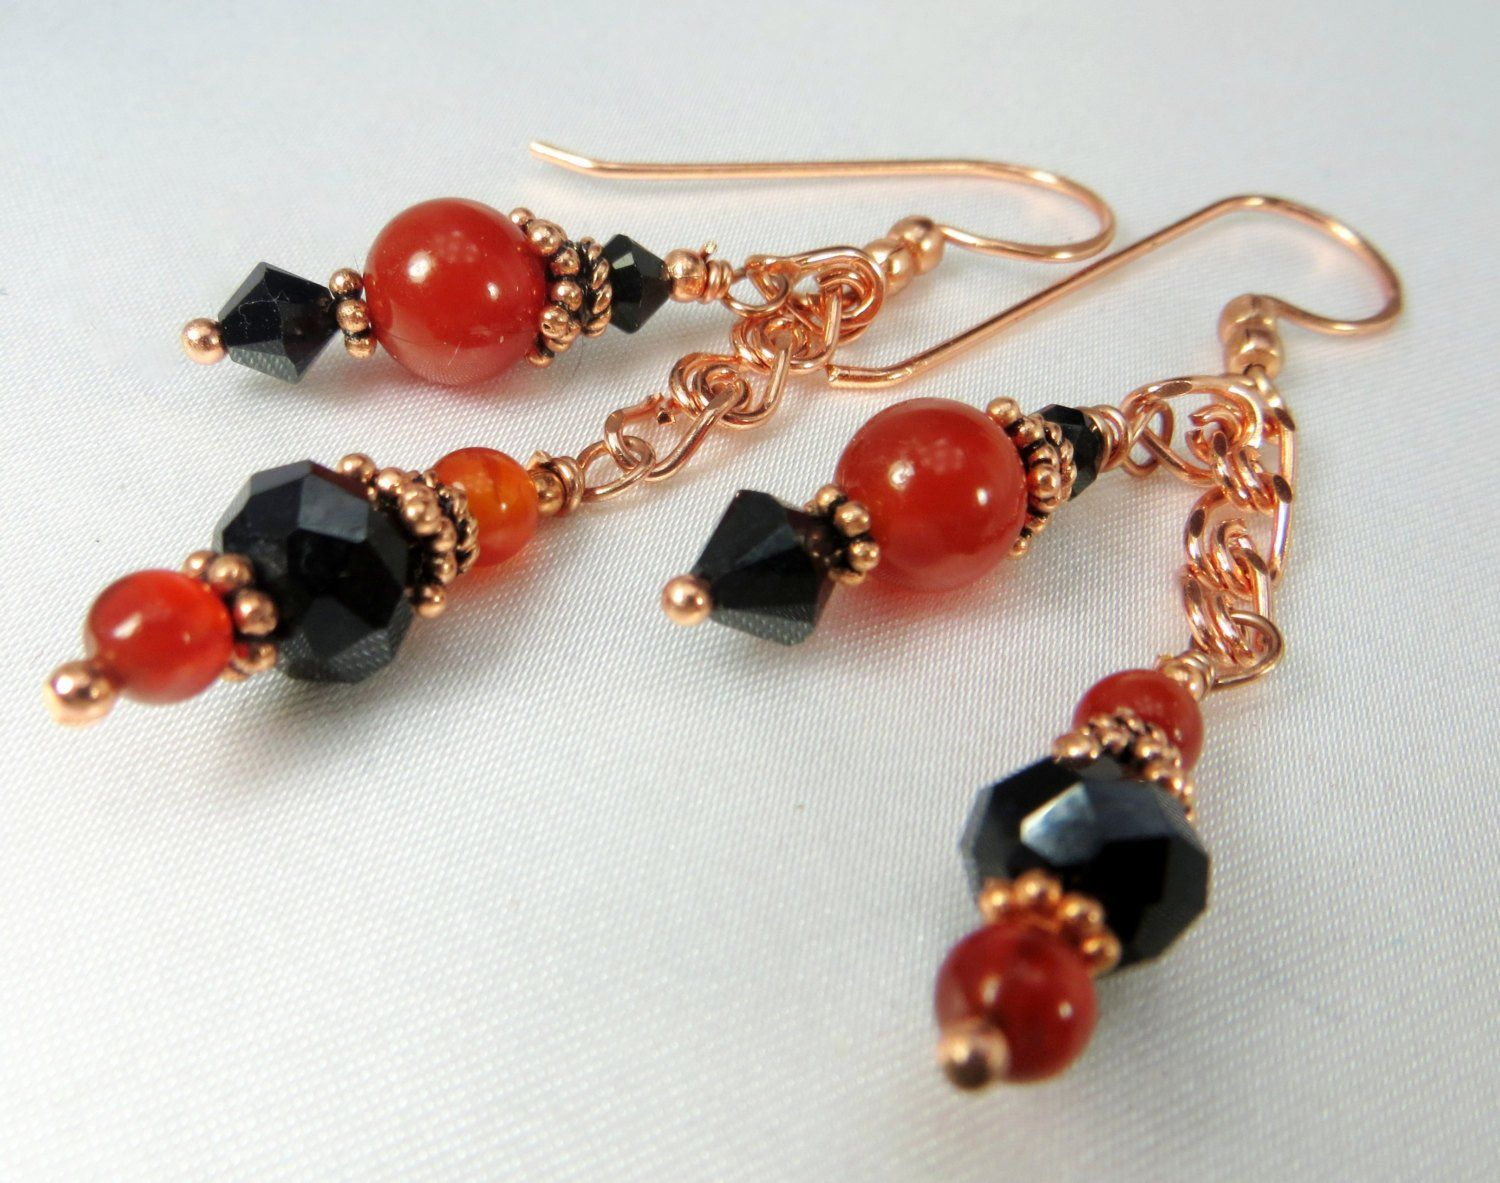 Rust, Black and Copper Earrings in Red Carnelian semiprecious stones ...